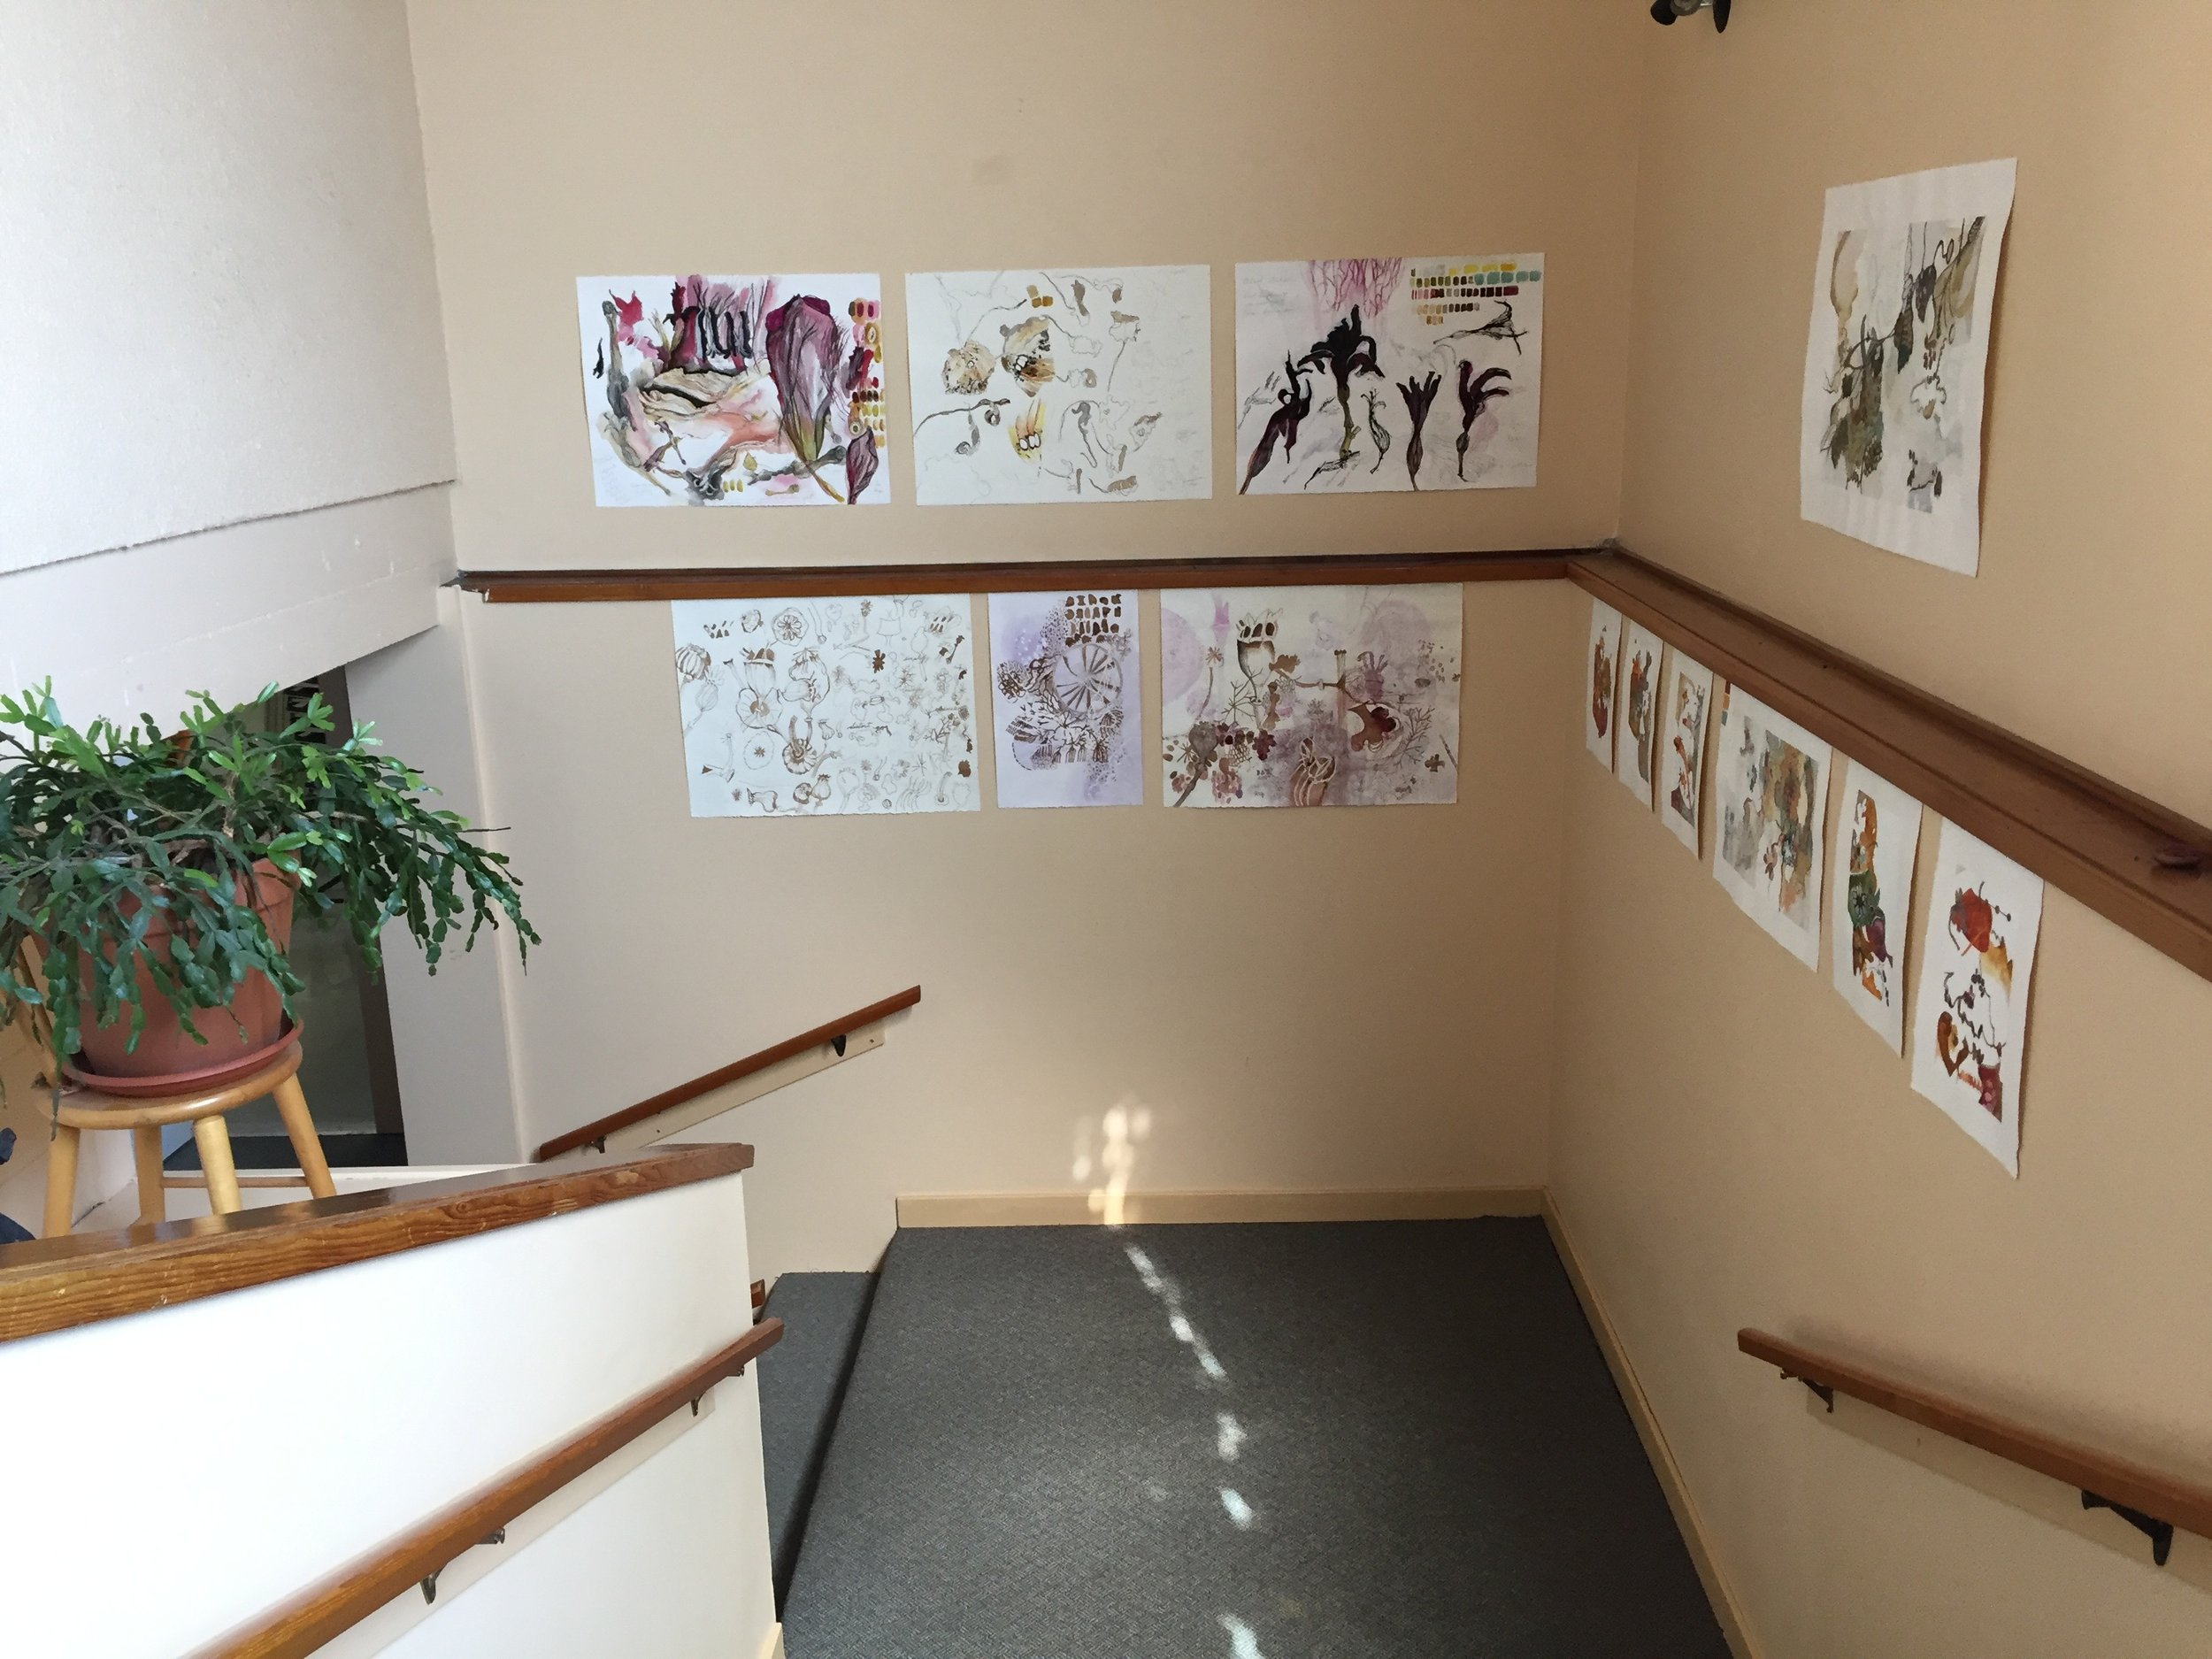 Jill Ehlert in the Stairwell Gallery